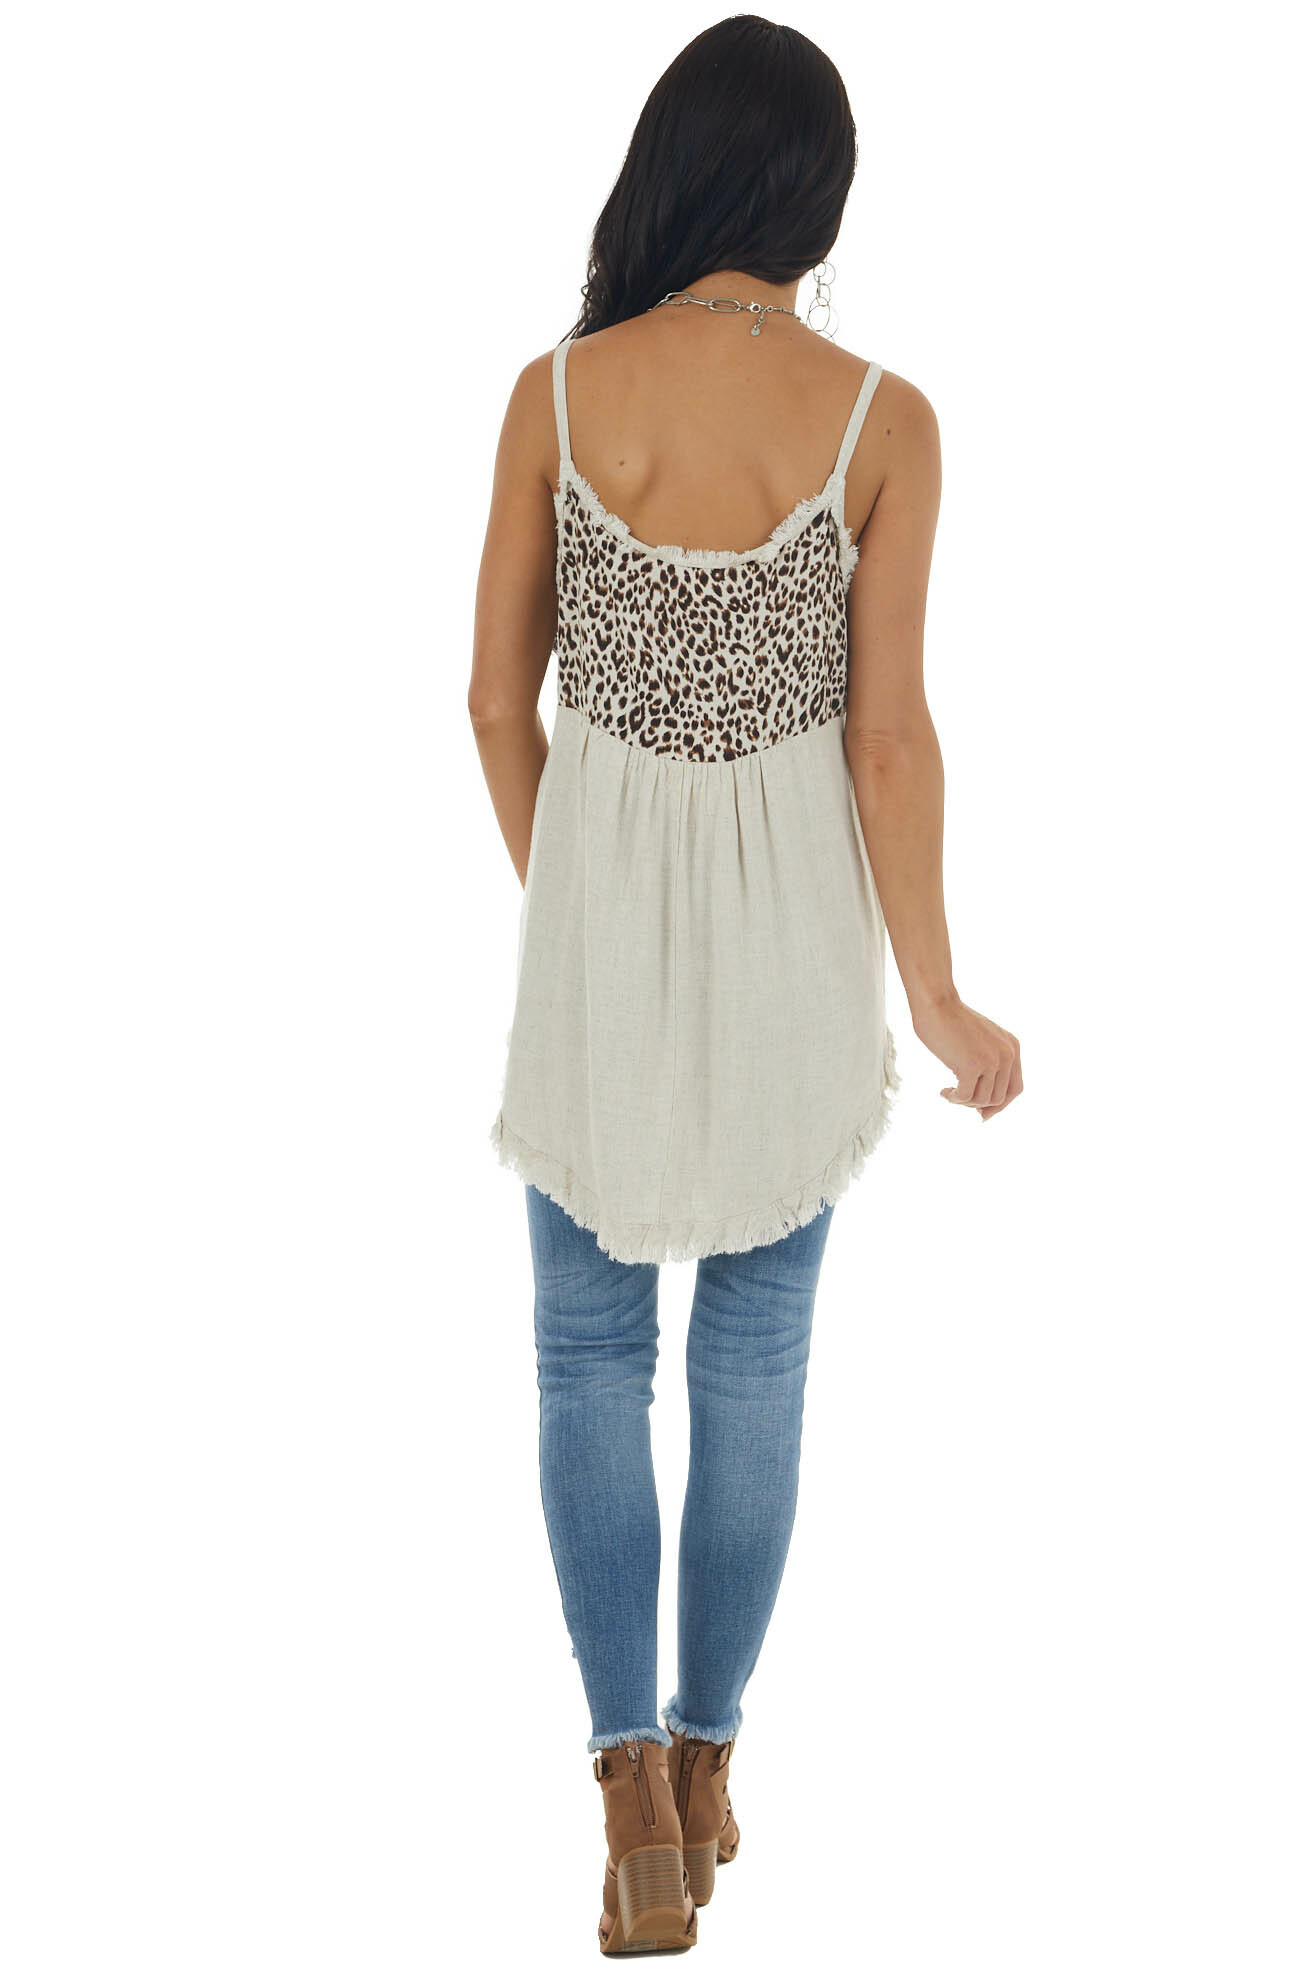 Oatmeal and Leopard Print Frayed Tank Top